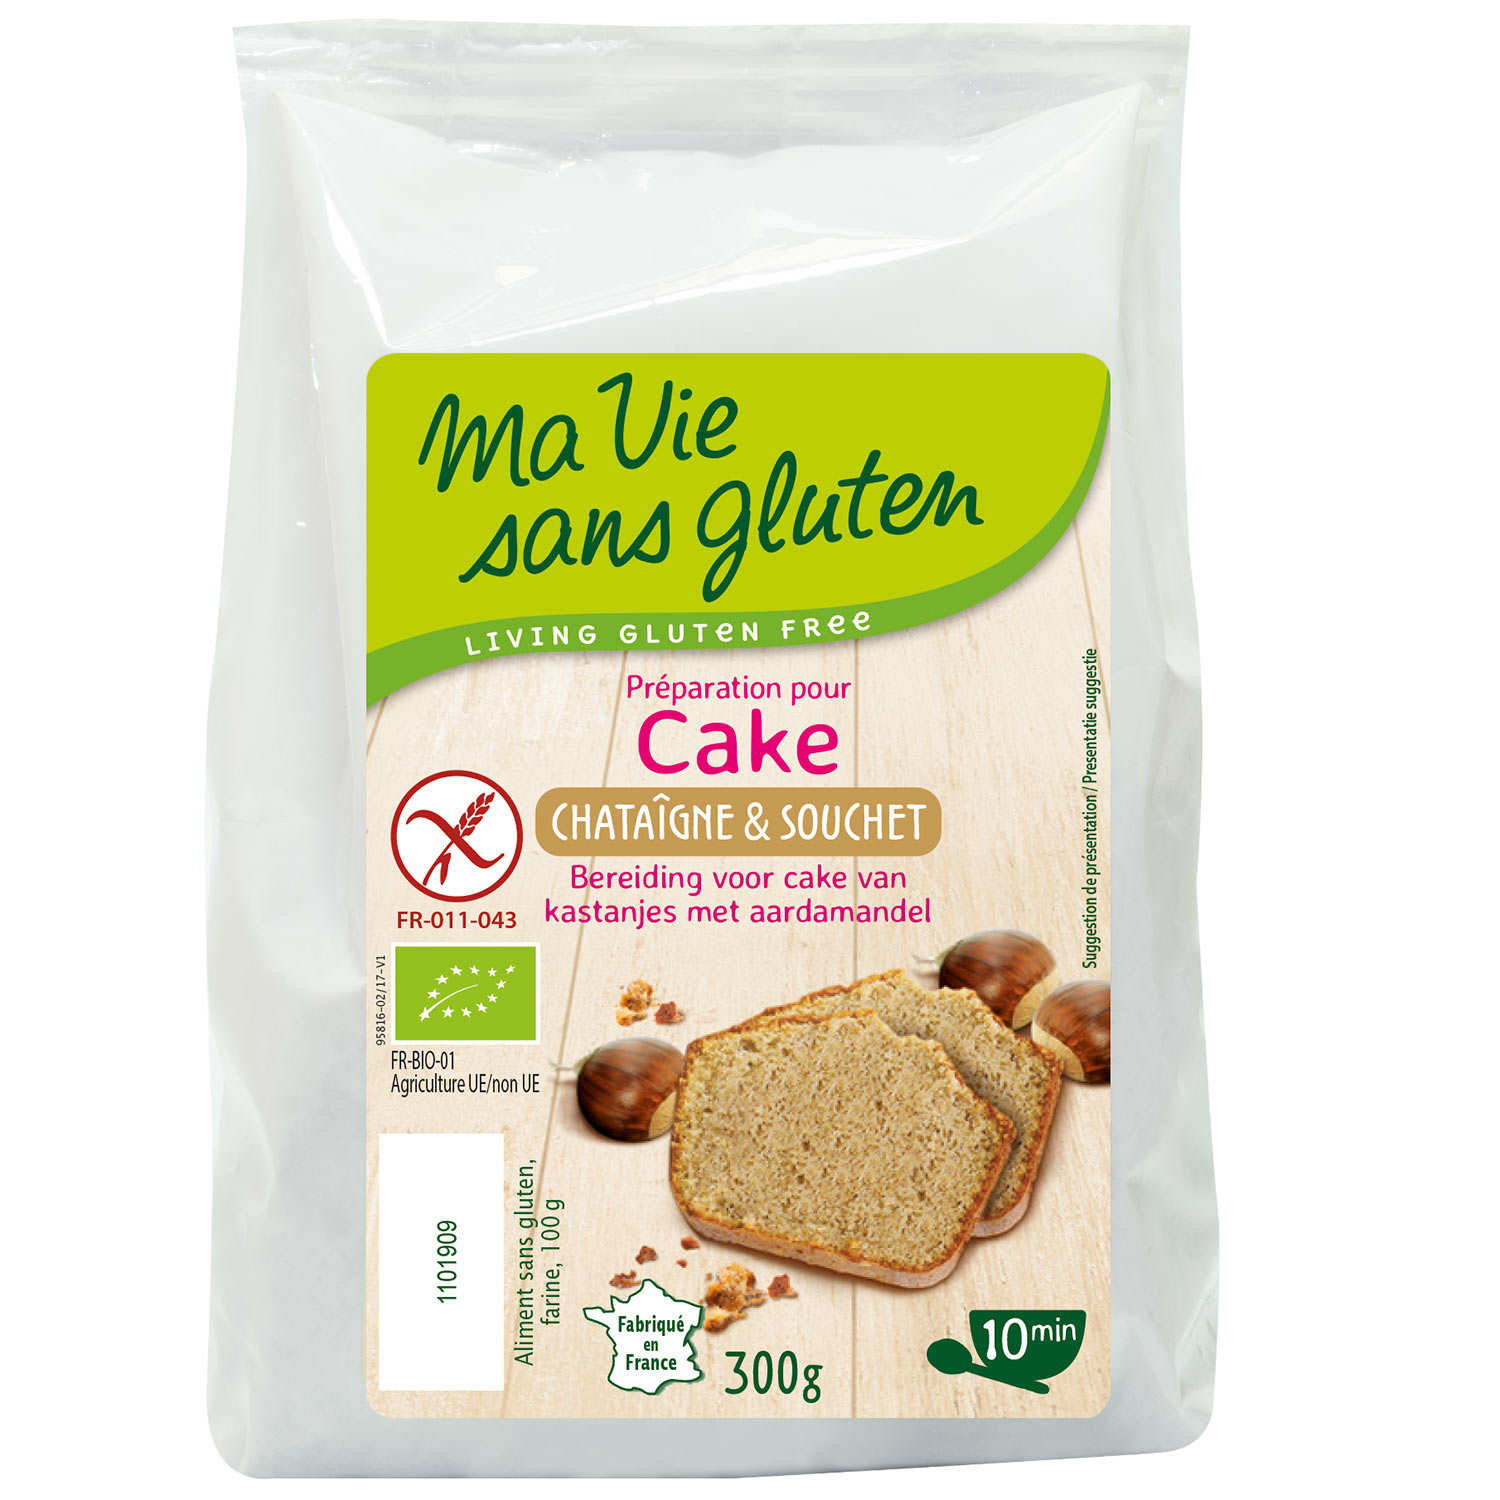 Organic mix for chestnut and tiger nut cake - gluten free